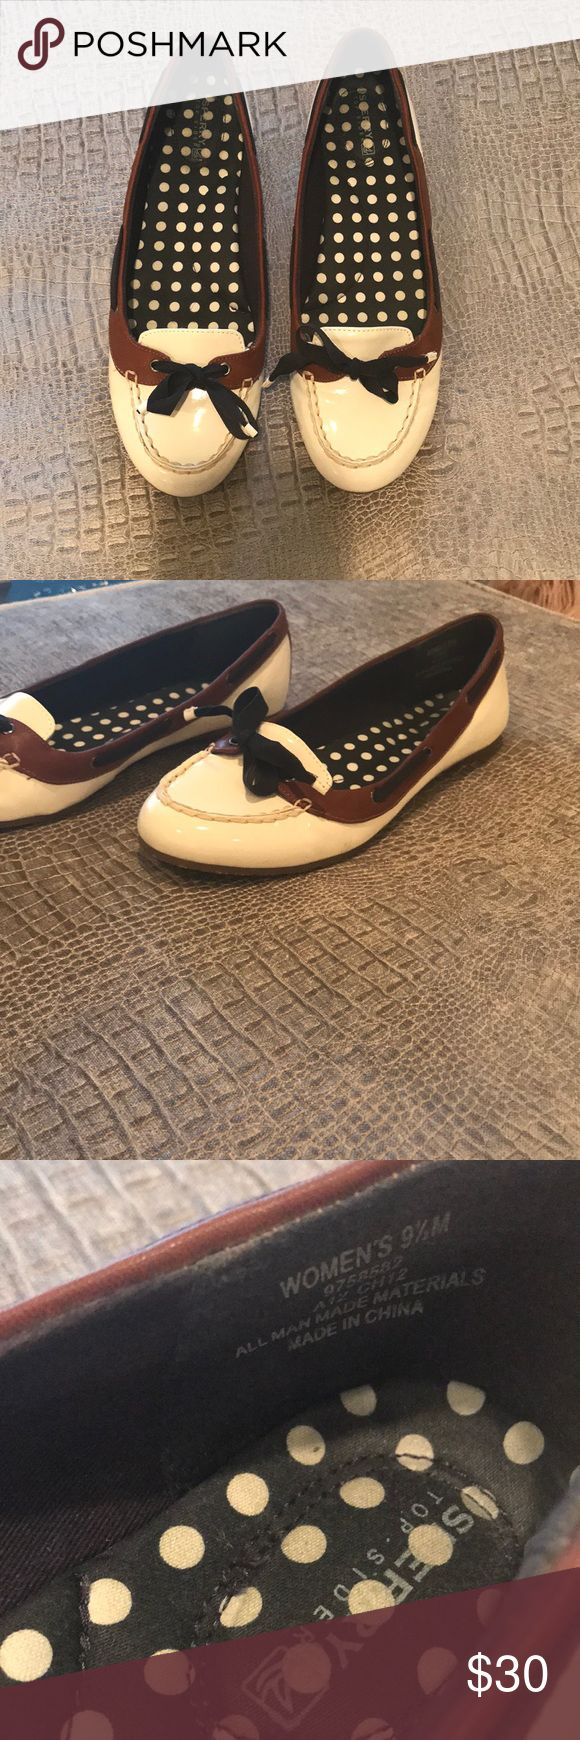 Sperry, women's loafer flats Sperry Top - Sider, women's patent loafers, in white with brown and navy, women's size 9.5. Super cute. Worn once. Padding in arch, very comfy. Sperry Top-Sider Shoes Flats & Loafers